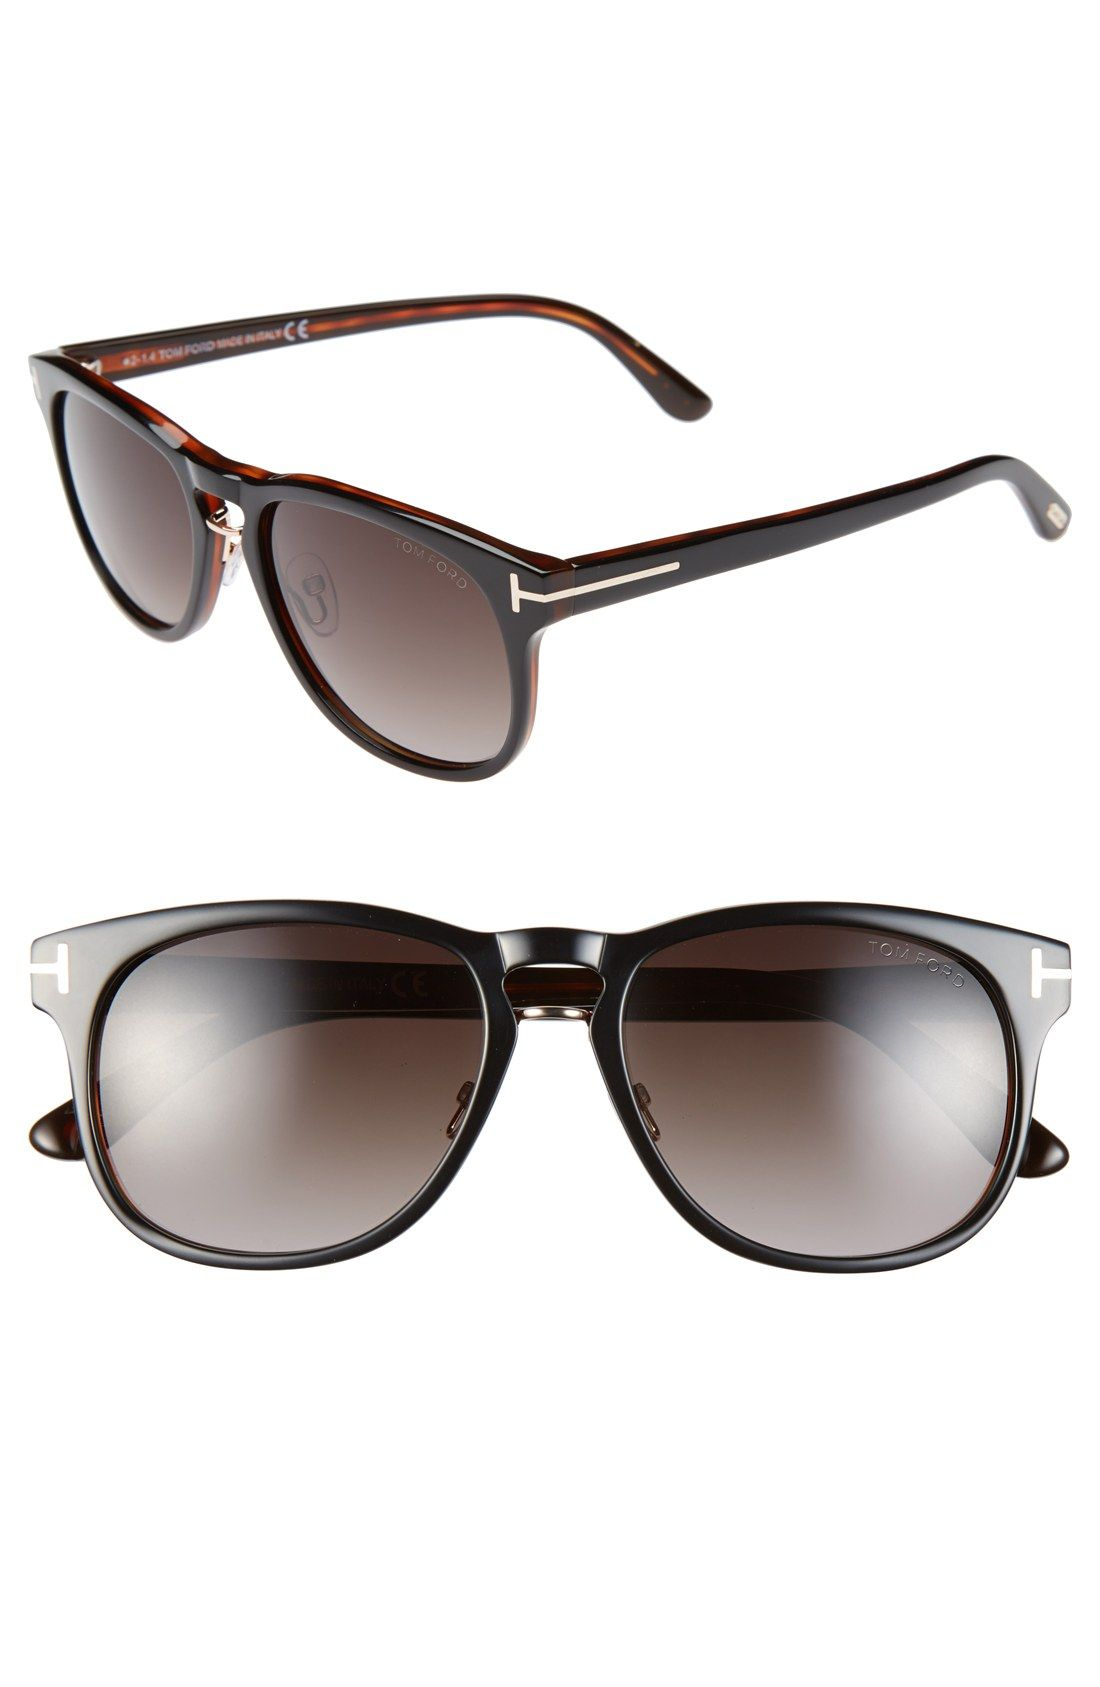 Tom Ford 'franklin' 55mm Sunglasses ' Give